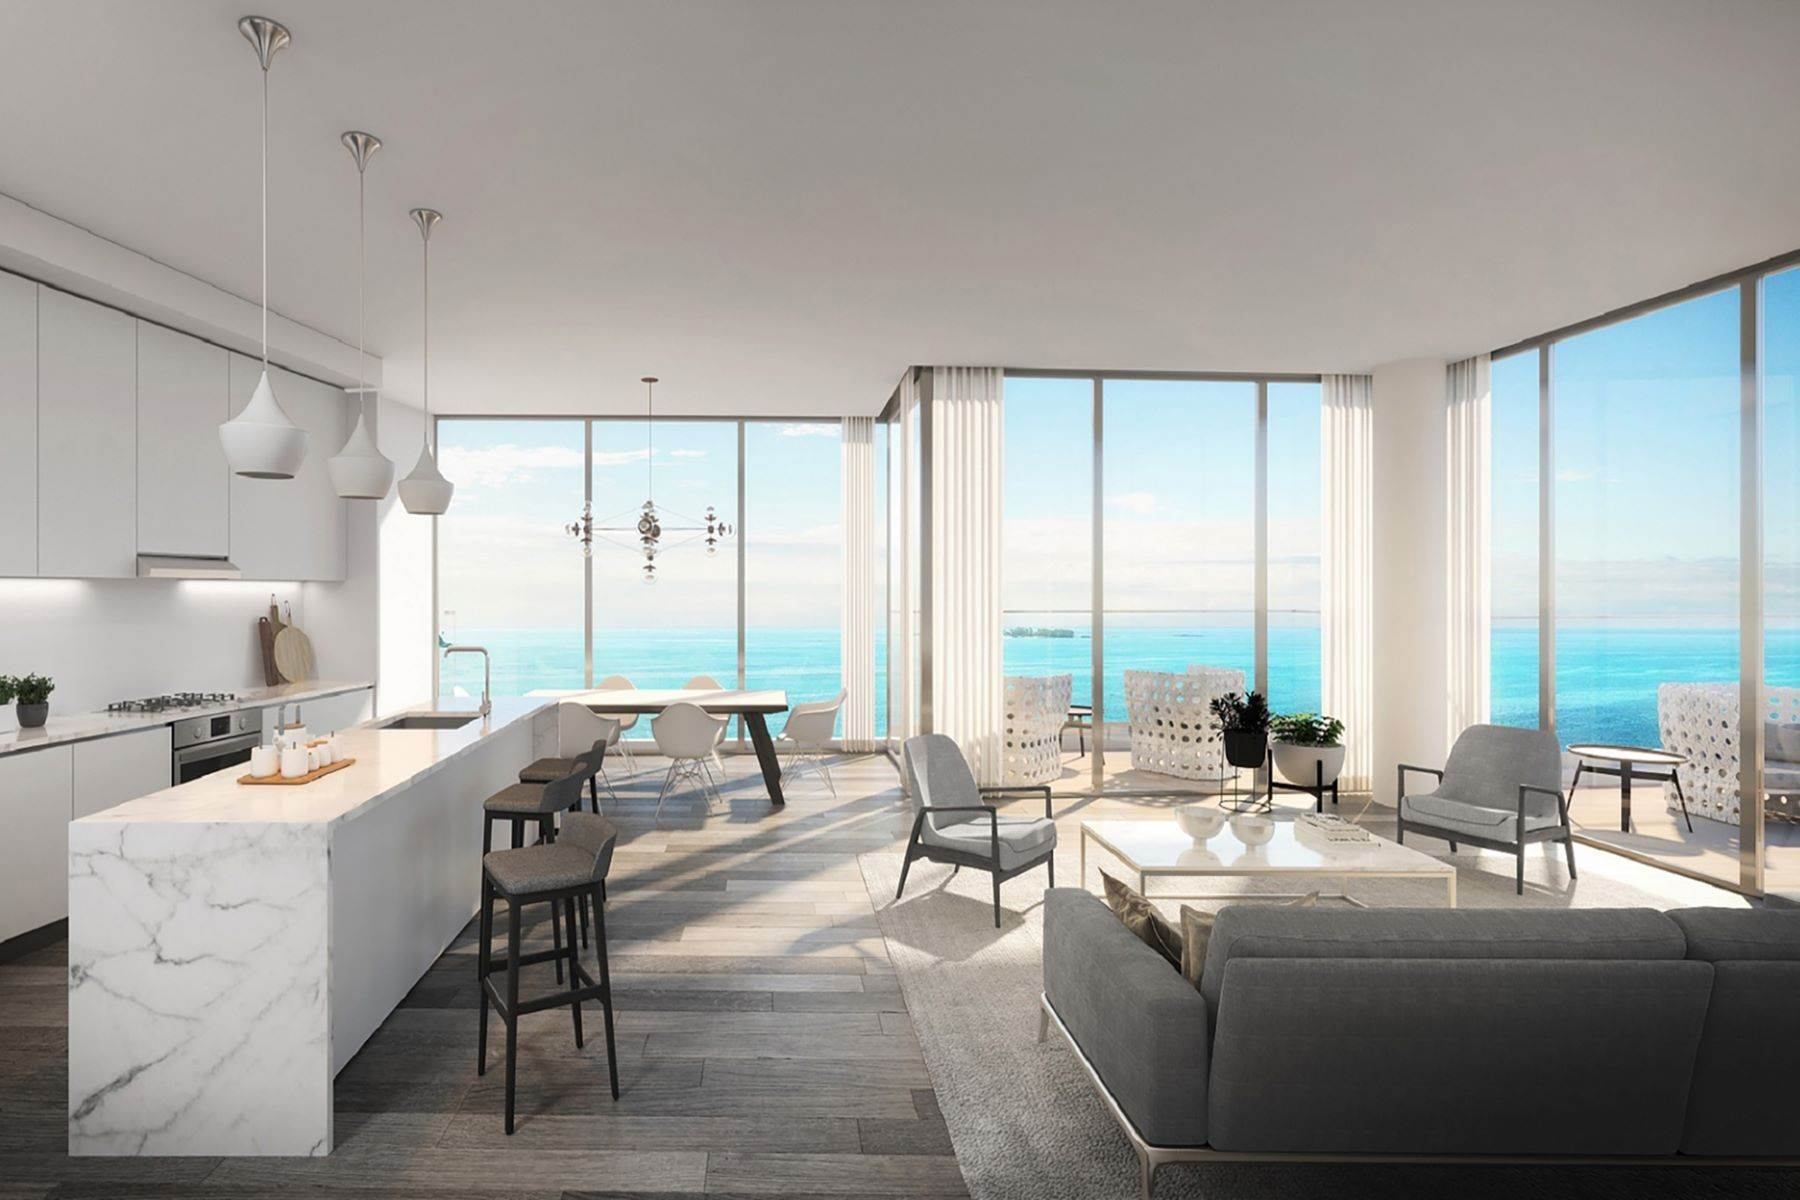 Property for Sale at The Residences at GoldWynn - Penthouse Cable Beach, Nassau And Paradise Island Bahamas